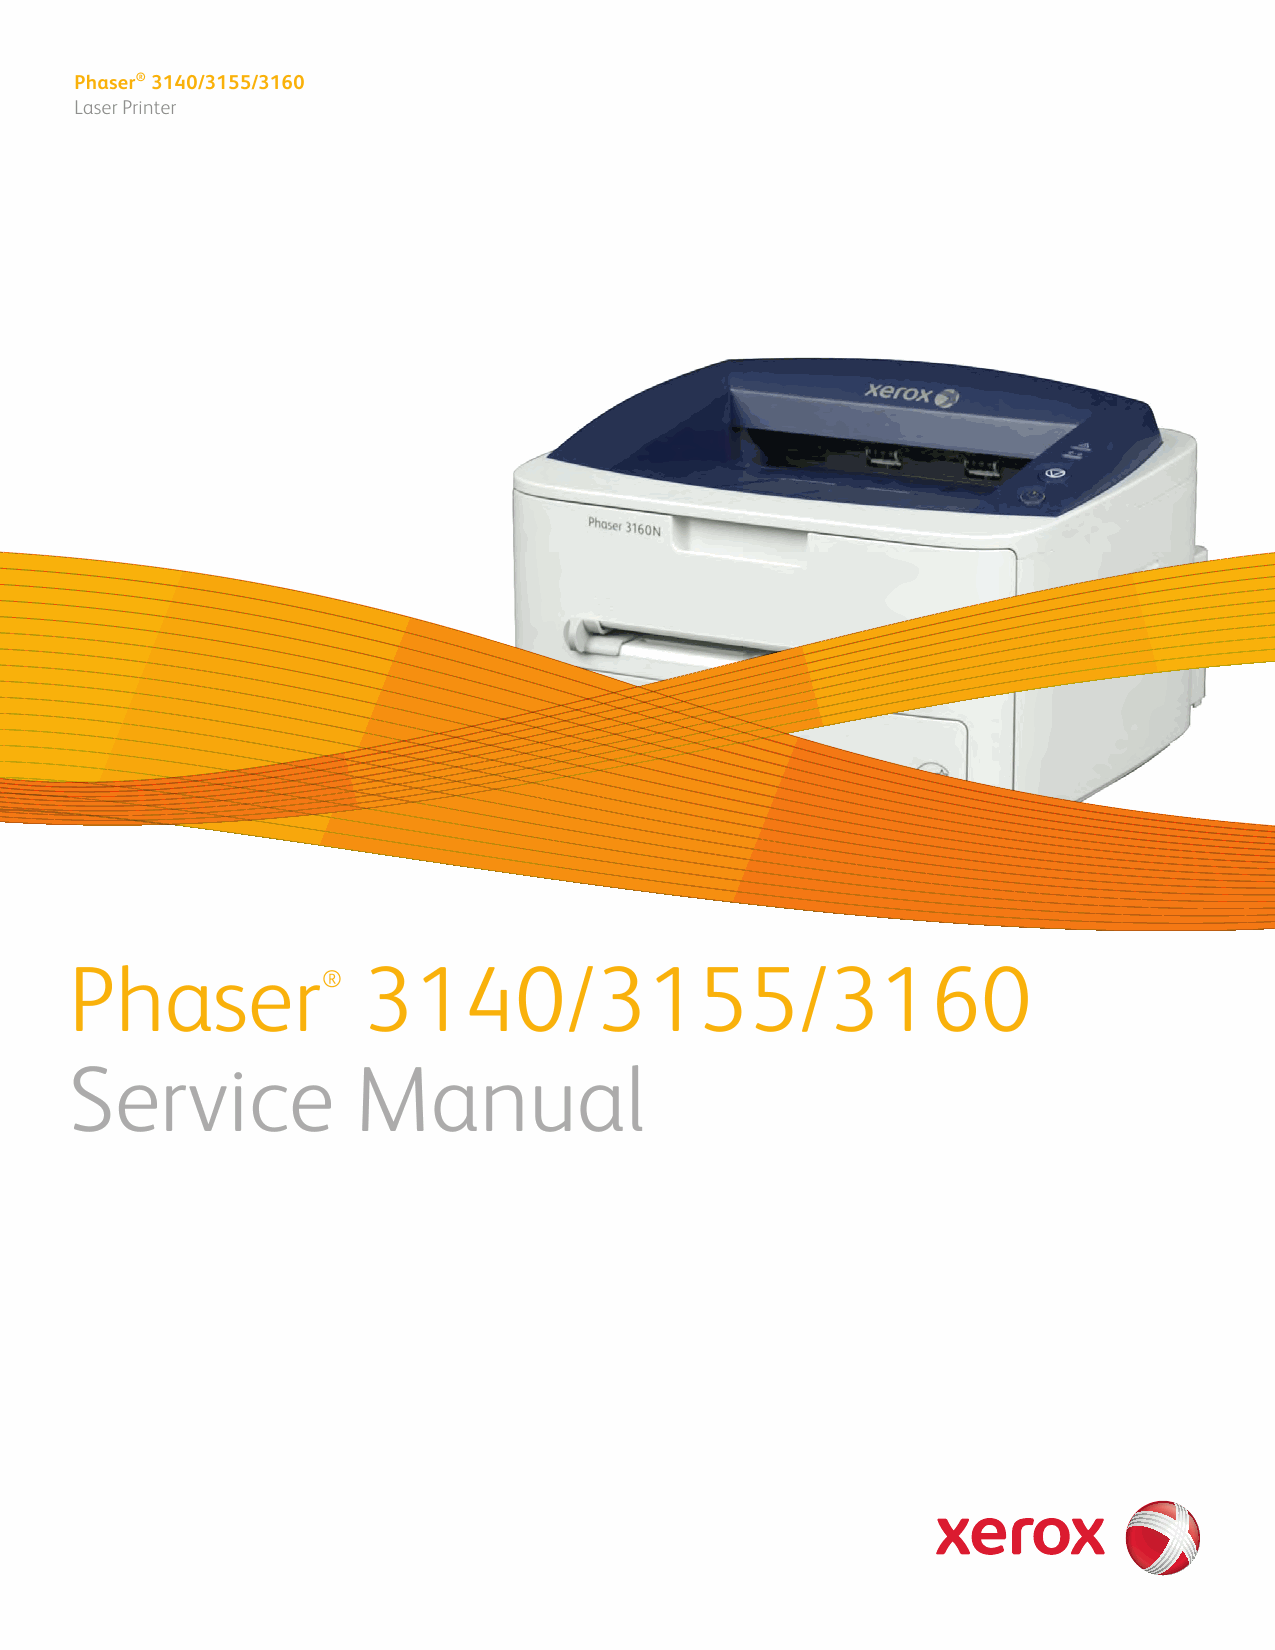 Xerox Phaser 3140 3155 3160 Parts List and Service Manual-1